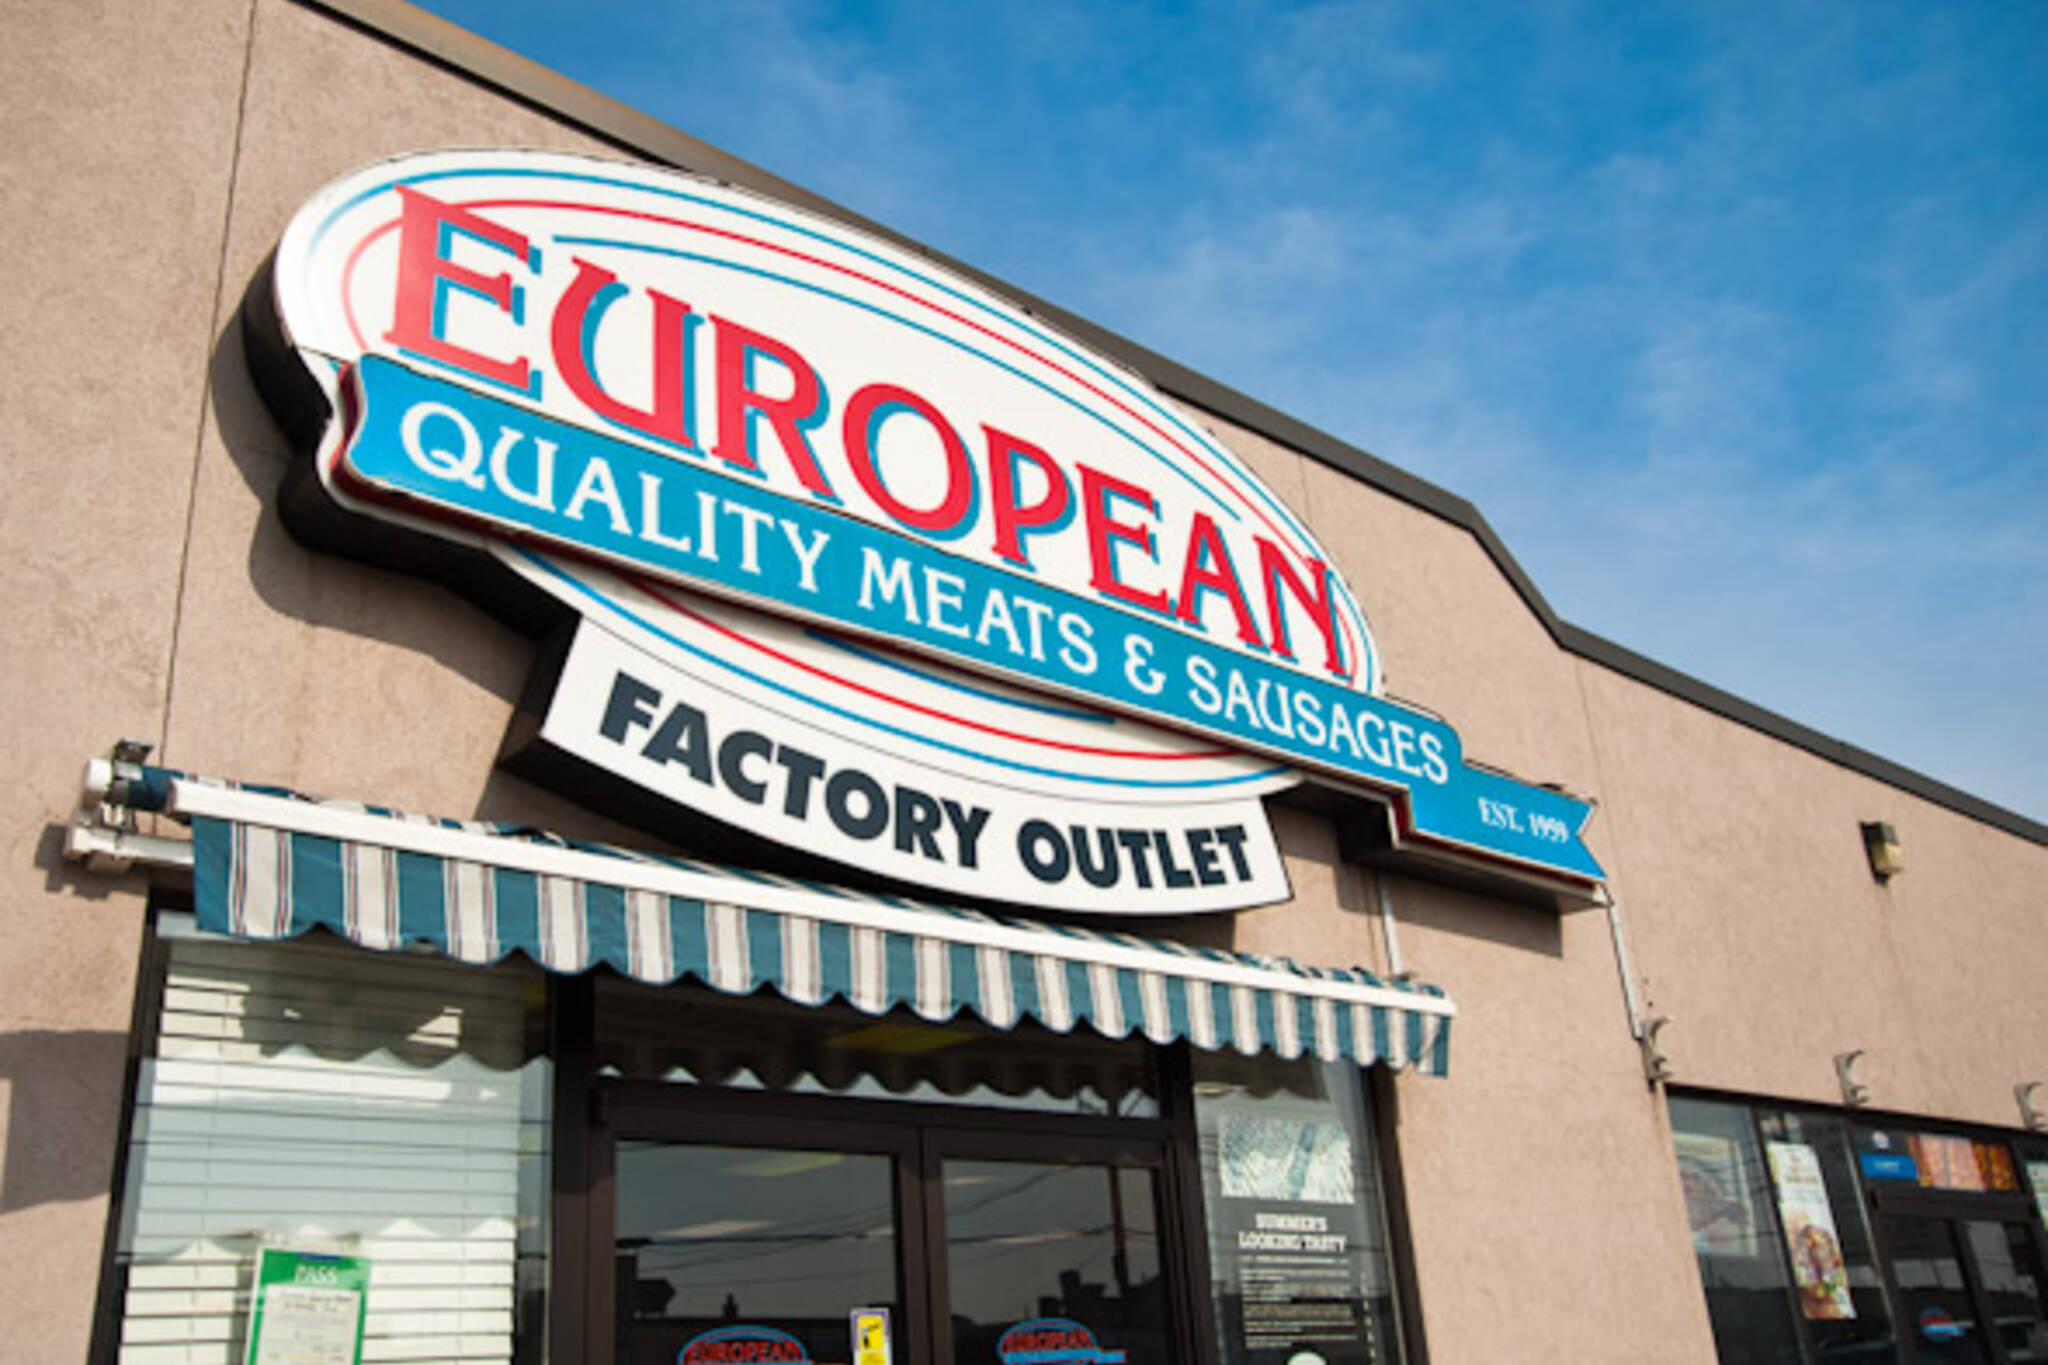 European Quality Meats Torontocloses